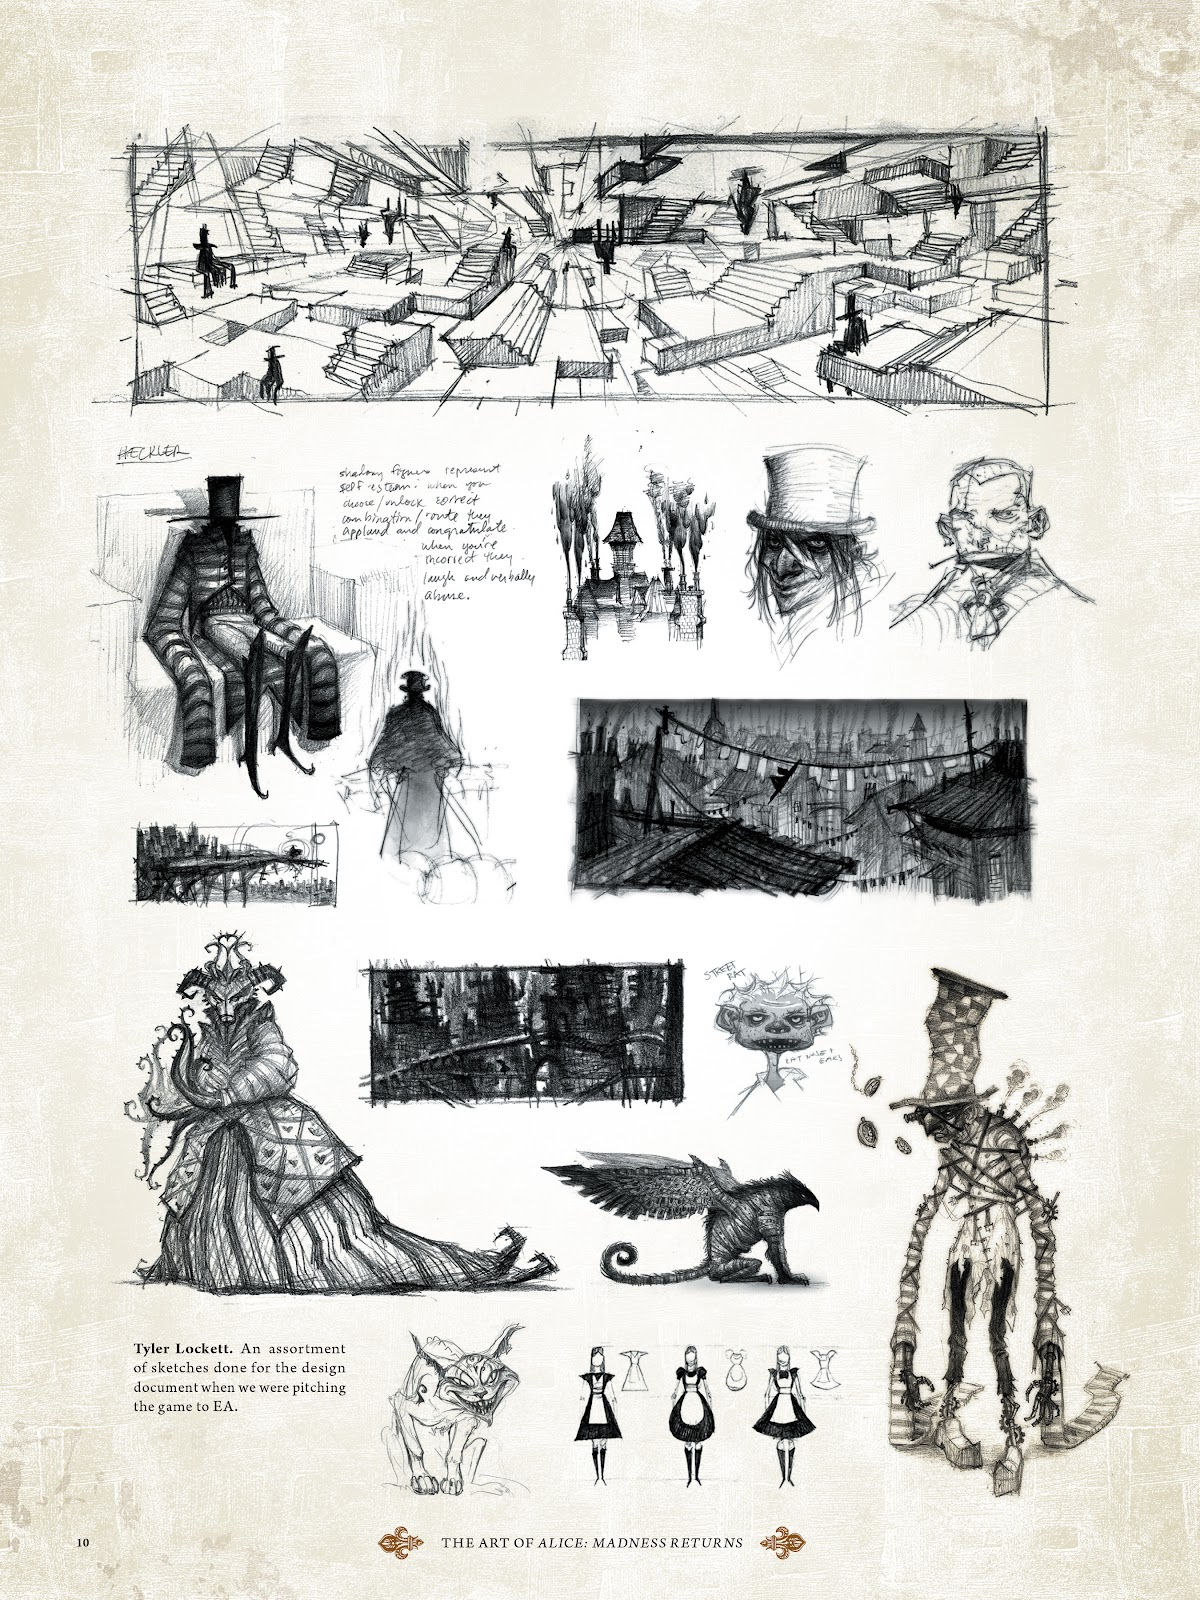 Read online The Art of Alice: Madness Returns comic -  Issue # TPB (Part 1) - 12